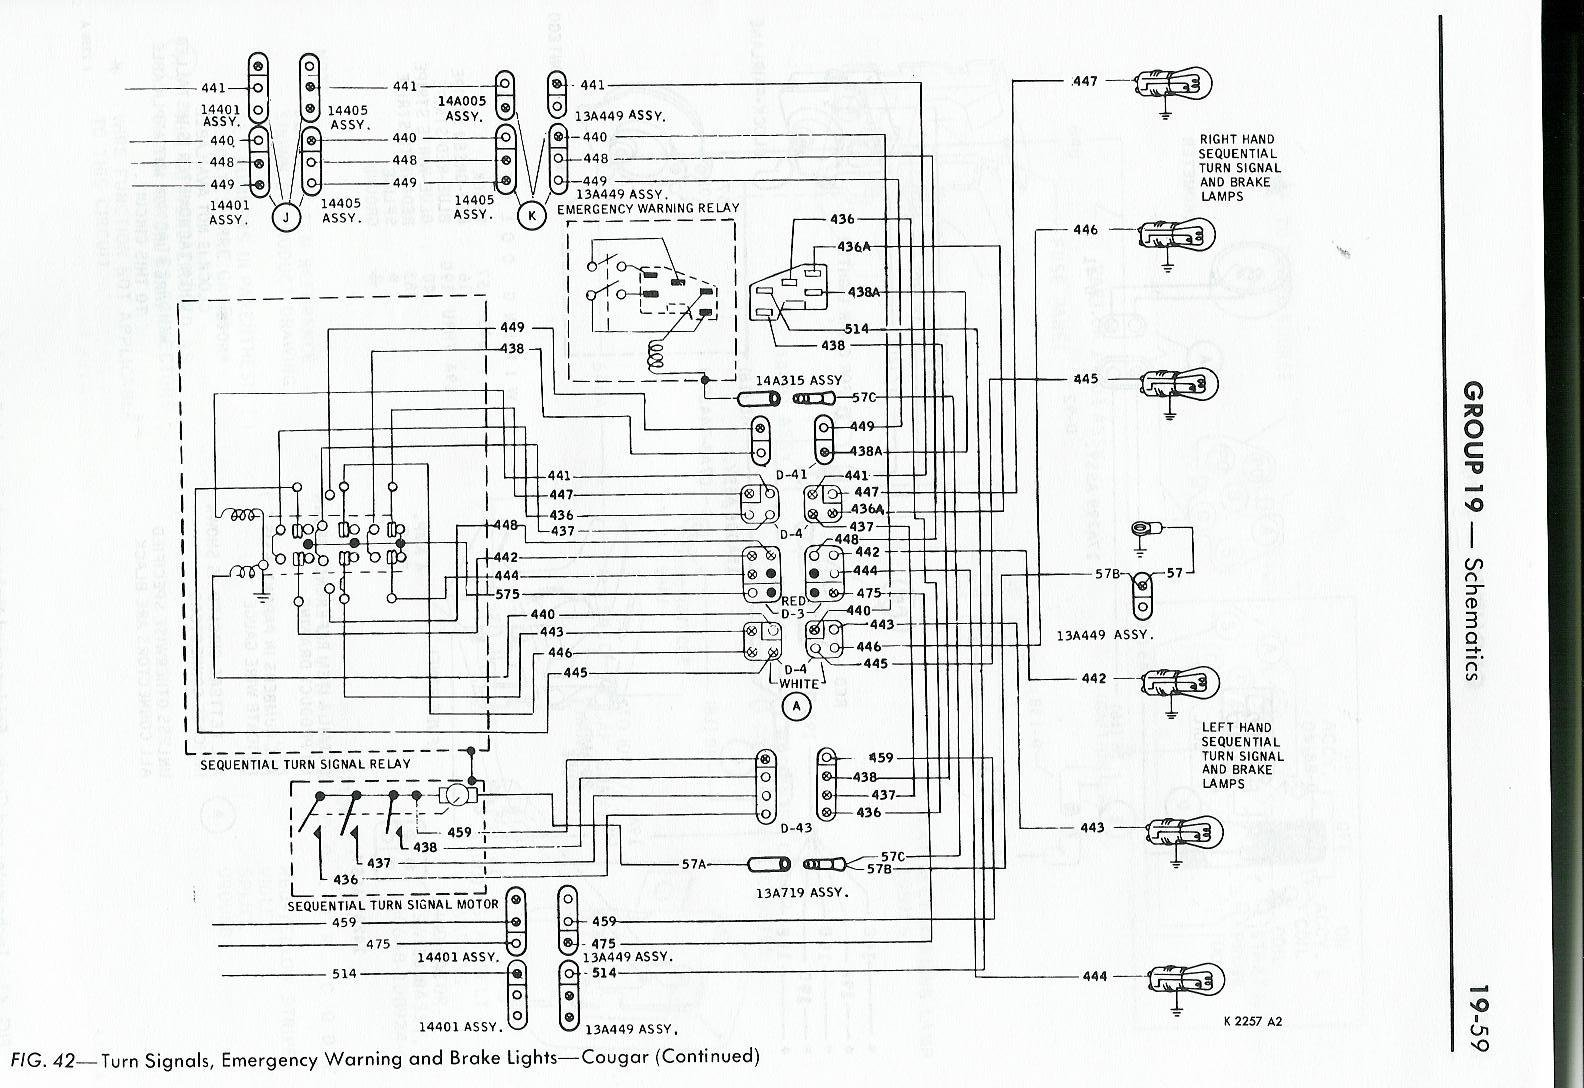 1968 Cougar Wiring Diagram Simple Page 1998 Ford Mustang Ignition Switch Land